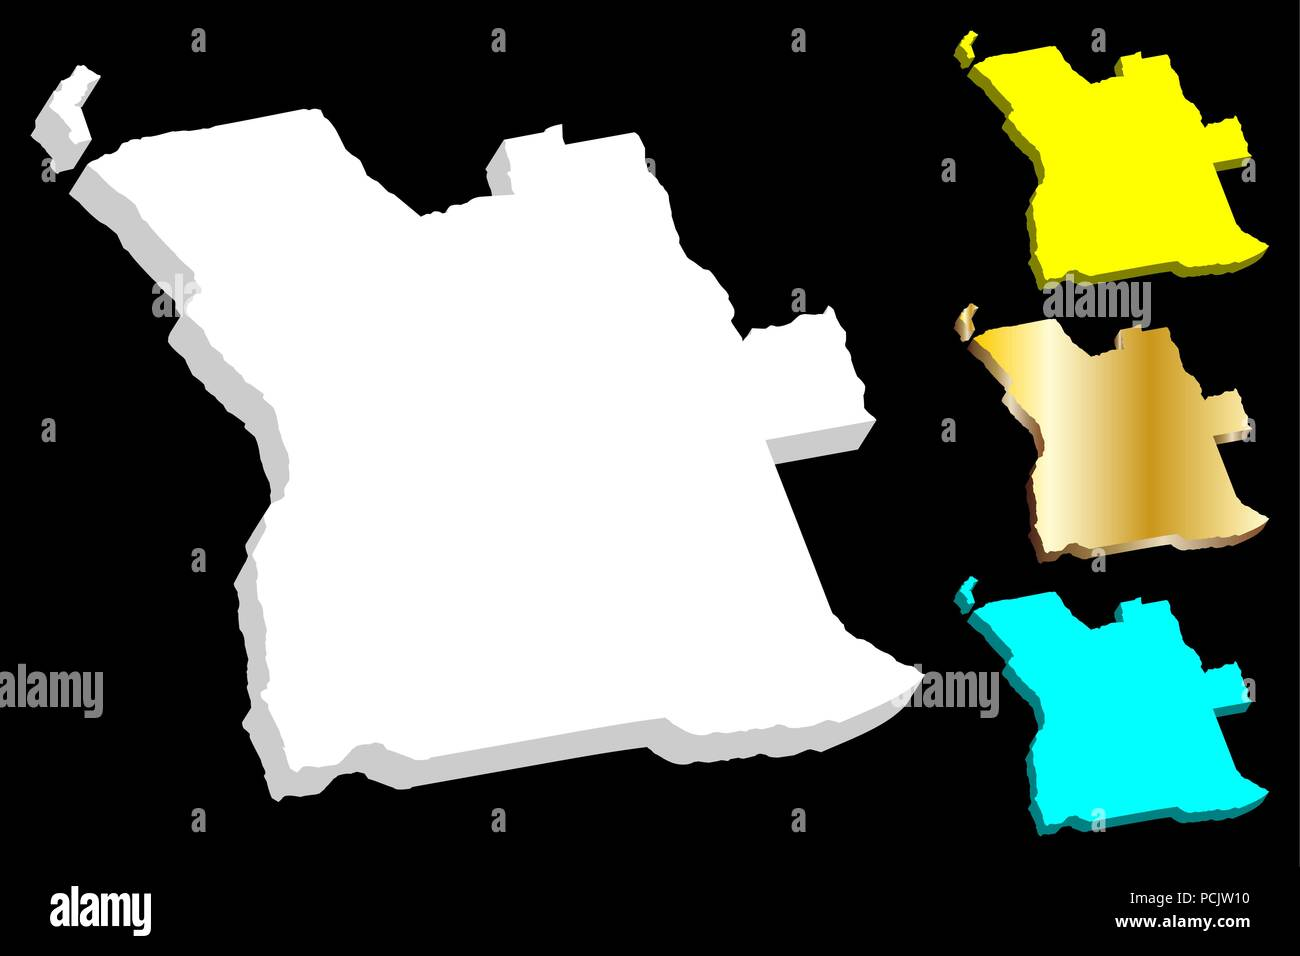 3D map of Angola (Republic of Angola) - white, yellow, blue and gold - vector illustration - Stock Image